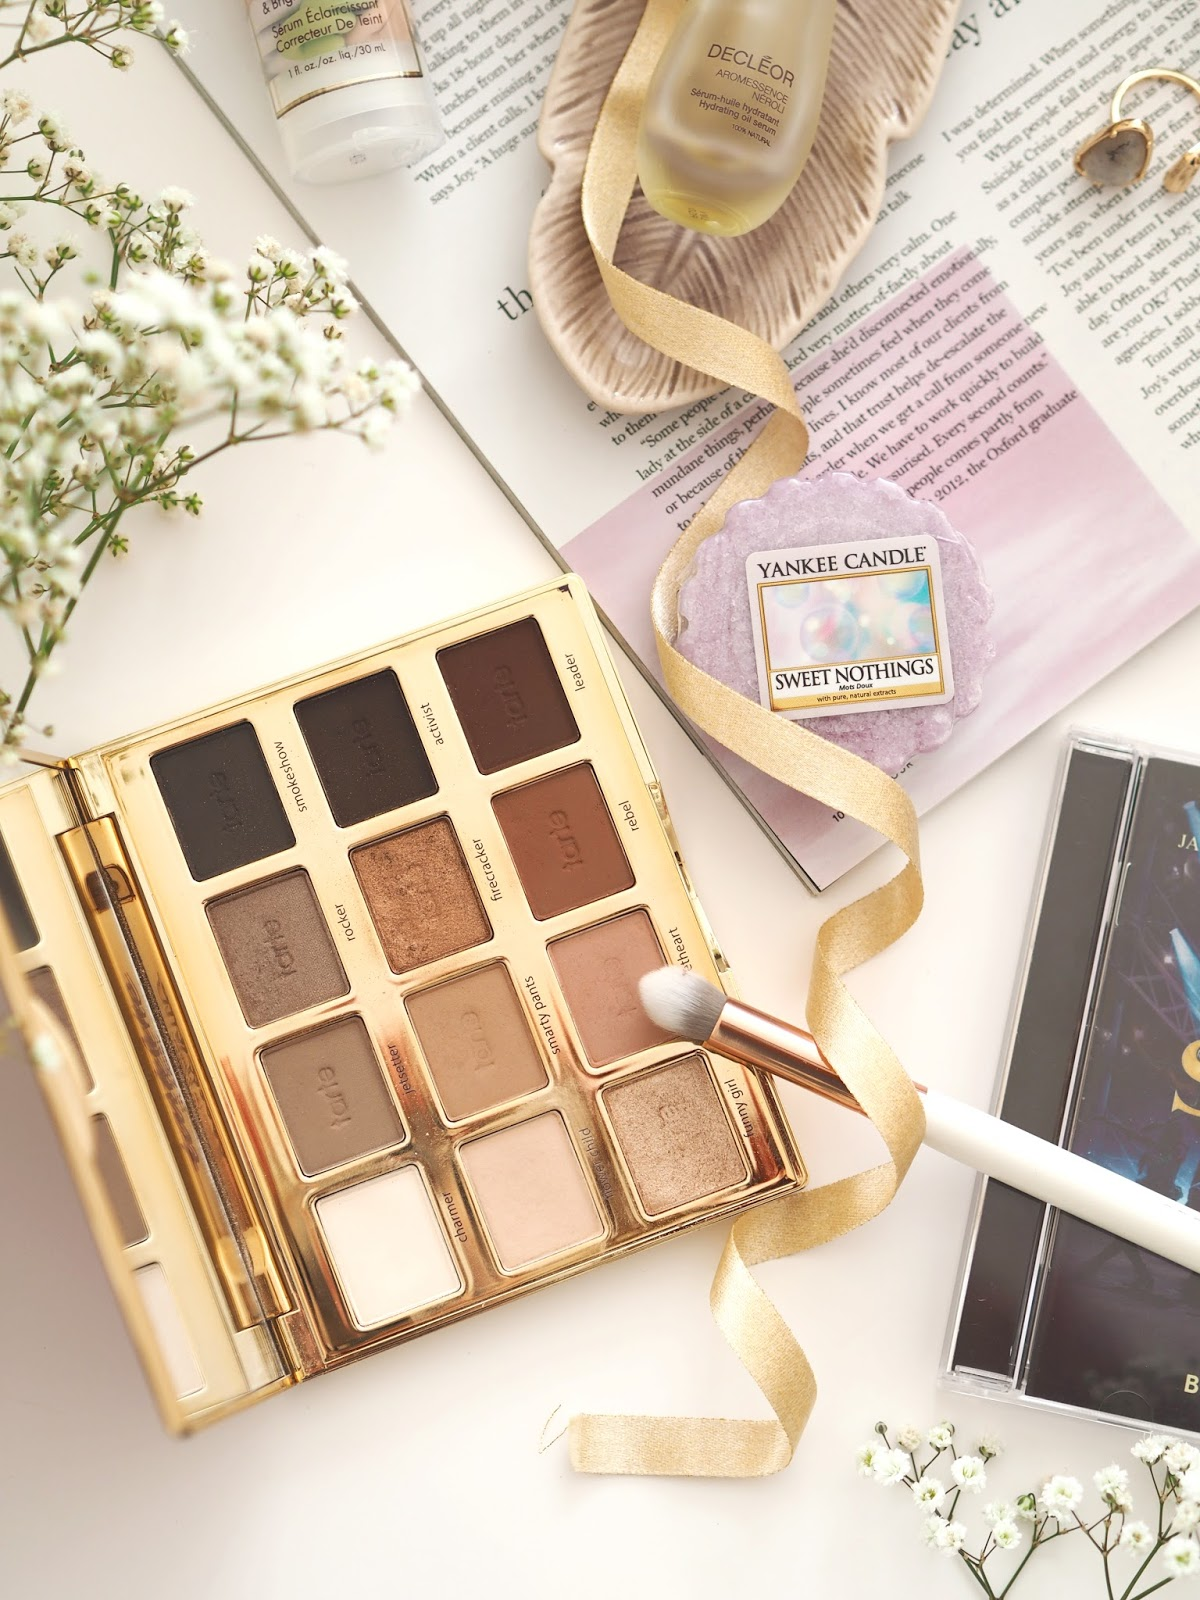 Loves List: February, Katie Kirk Loves, UK Blogger, make up blogger, hugh jackman, a million dreams, skincare blogger, tarte cosmetics, the greatest showman soundtrack, yankee candle, sweet nothings, ideal of sweden phone case, discount code